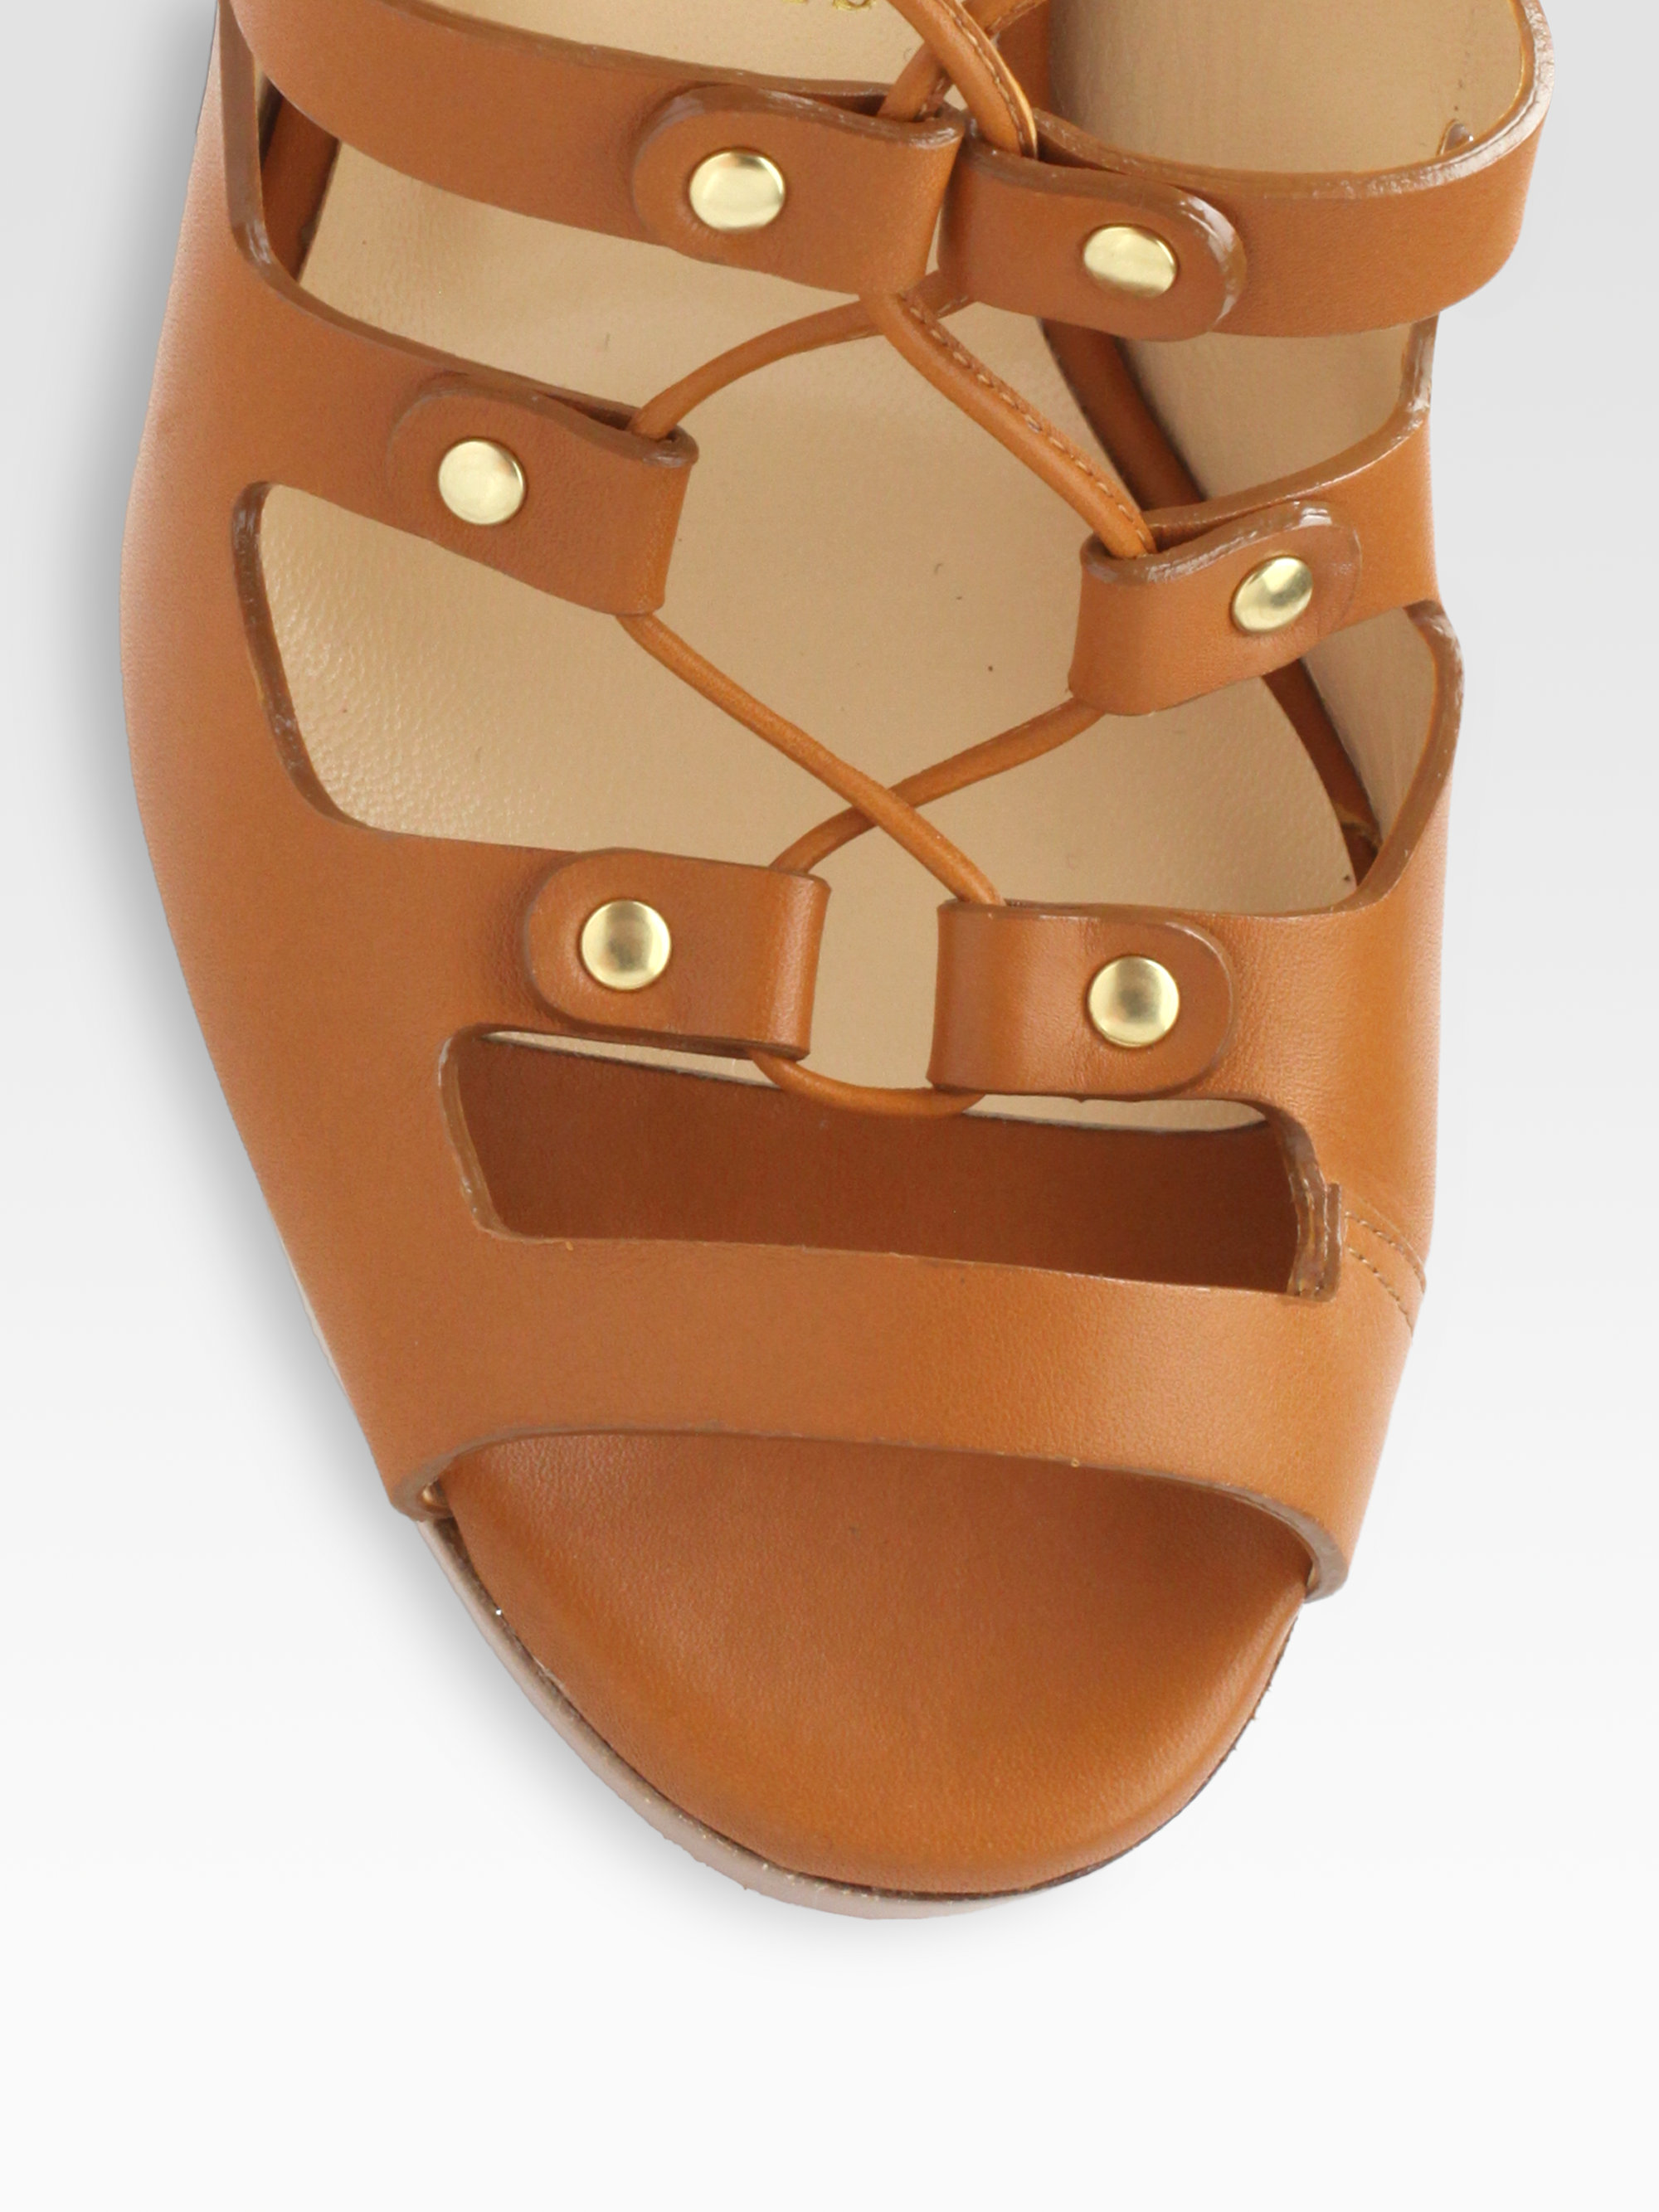 Artesur ? christian louboutin sandals Brown leather short stacked ...